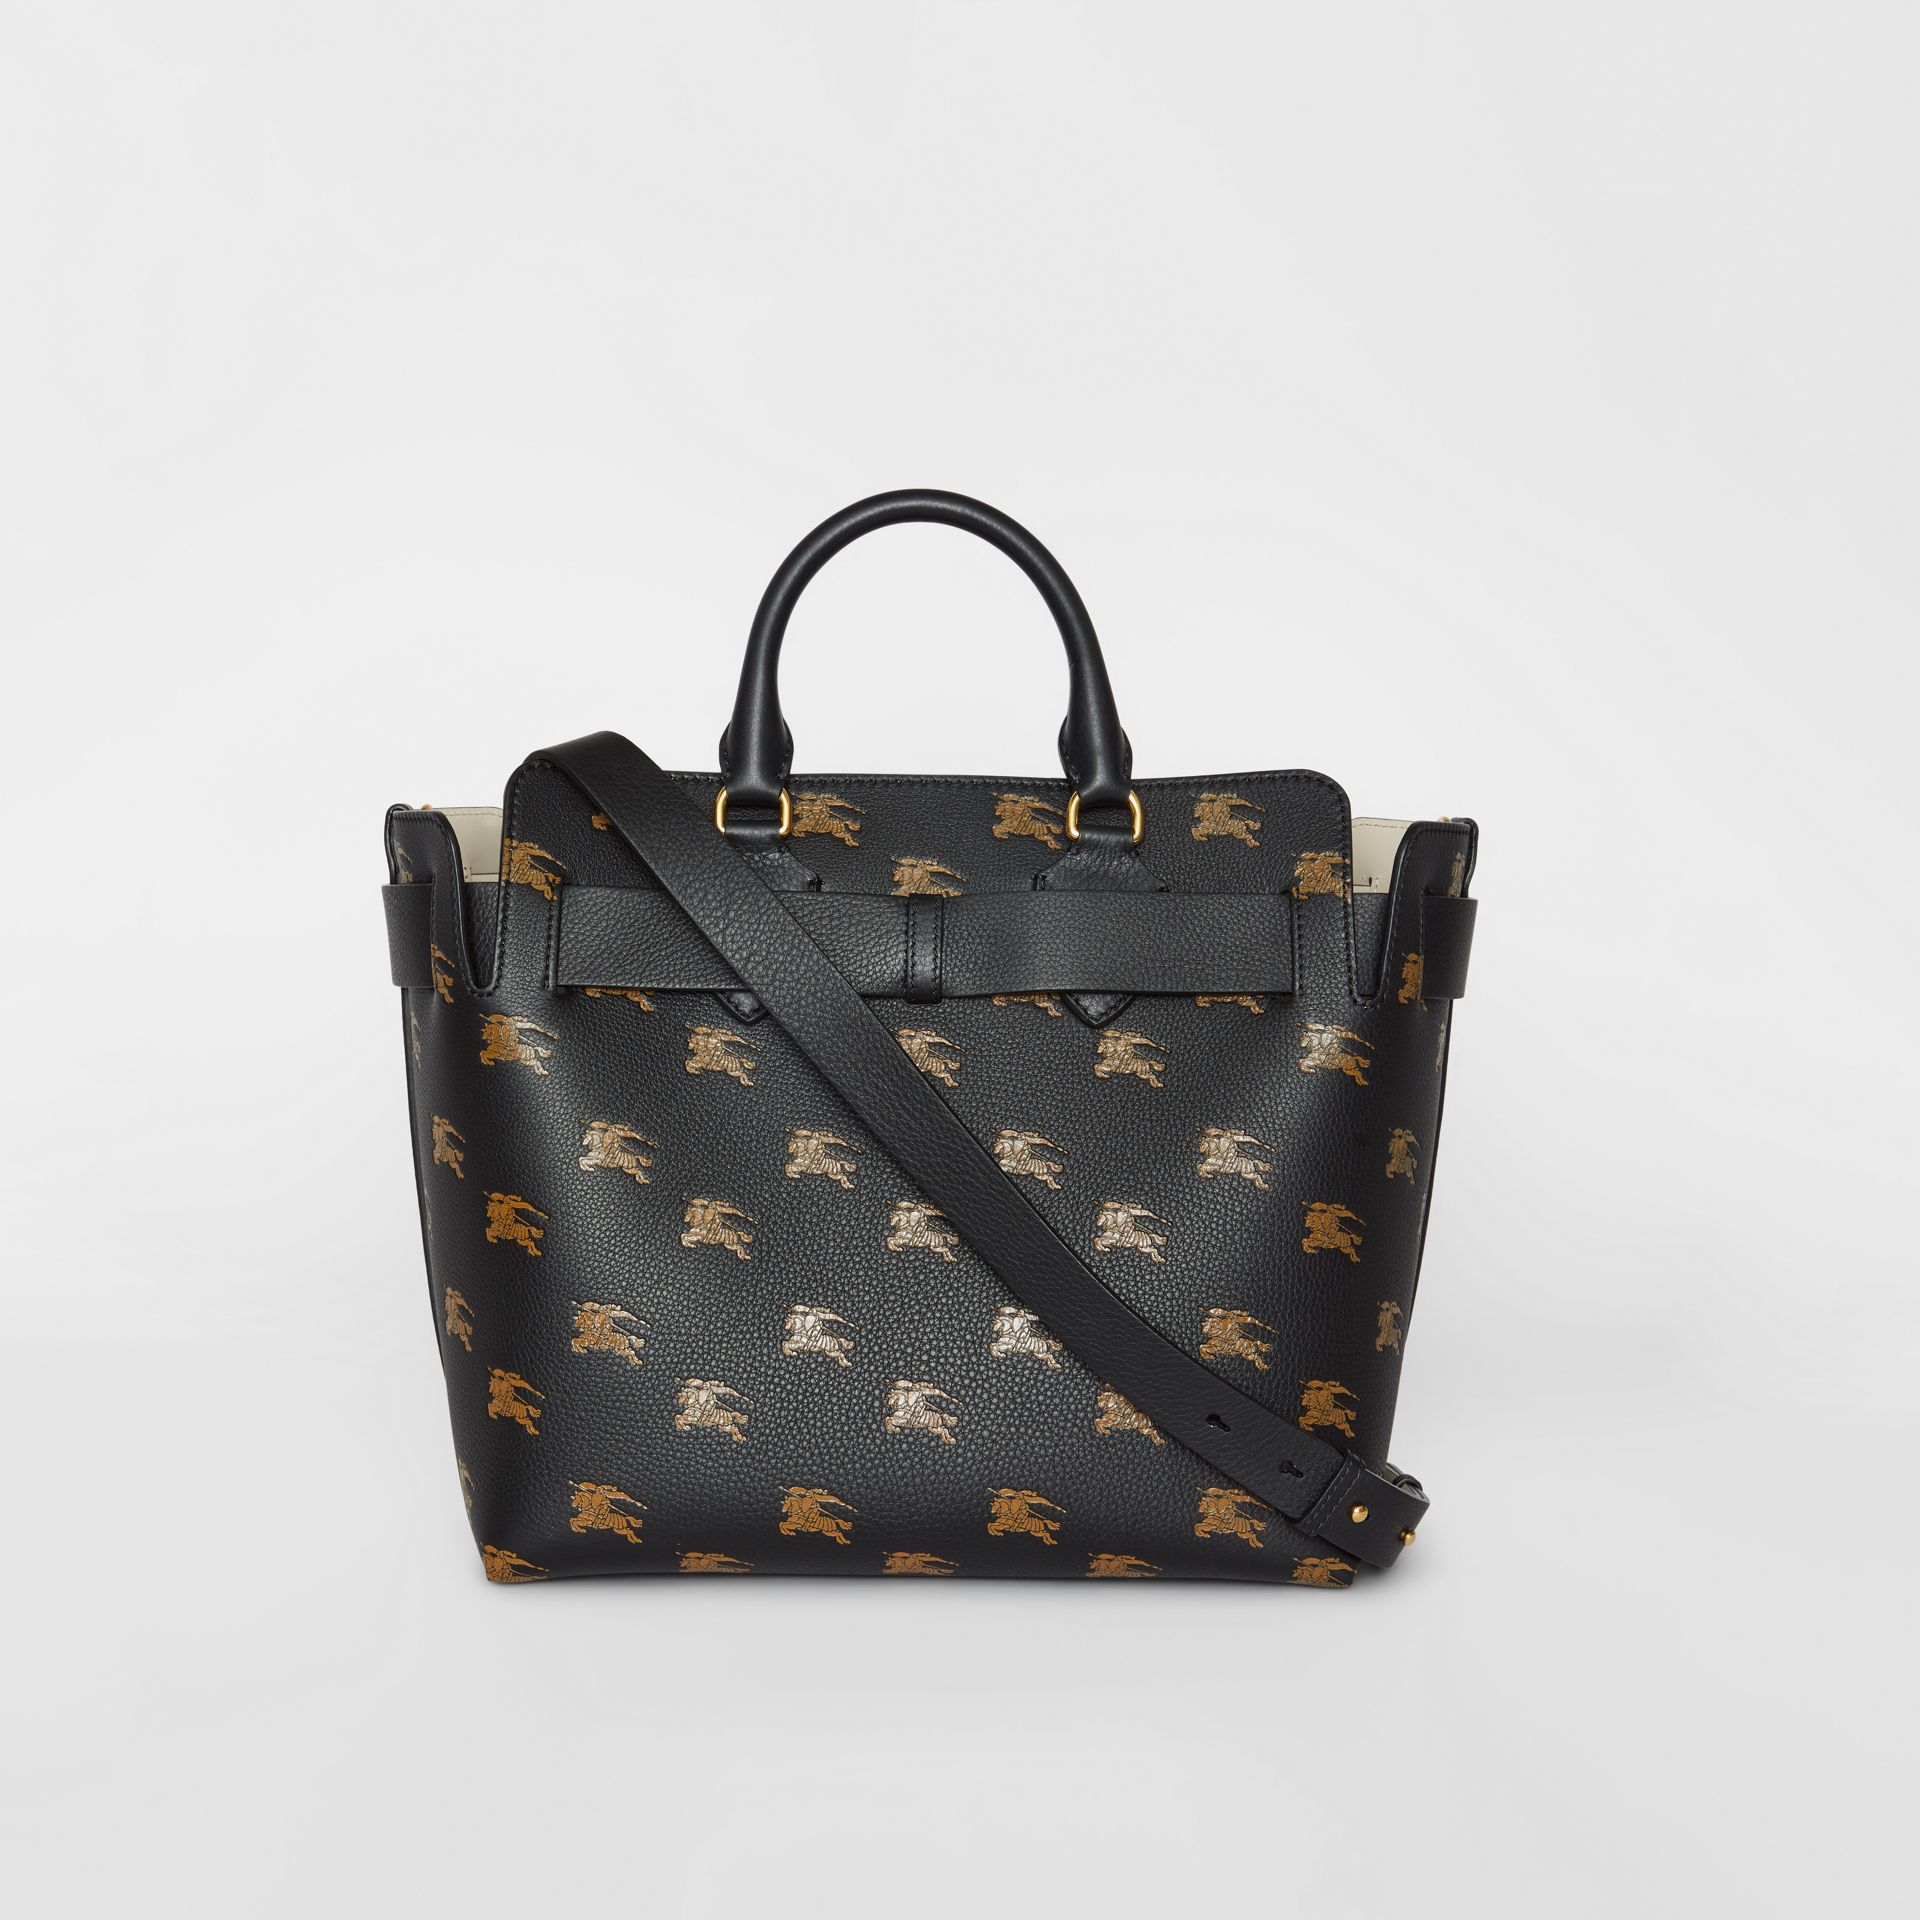 Borsa The Belt media in pelle con cavaliere equestre (Nero) - Donna | Burberry - immagine della galleria 7